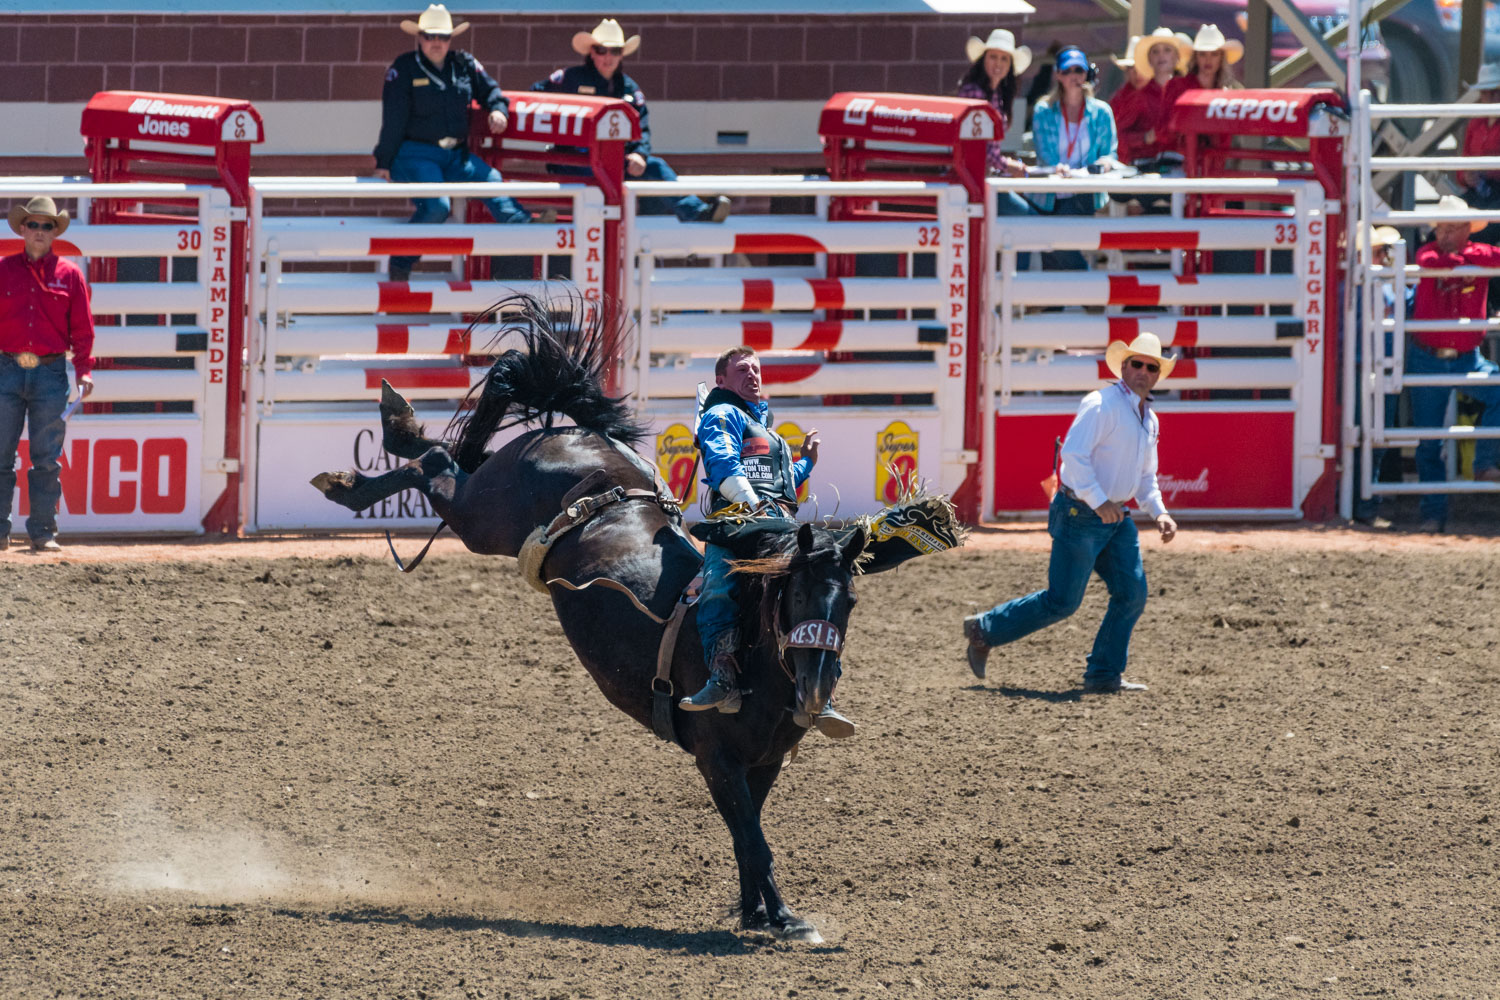 Some bloke rides a horse during the stampede.